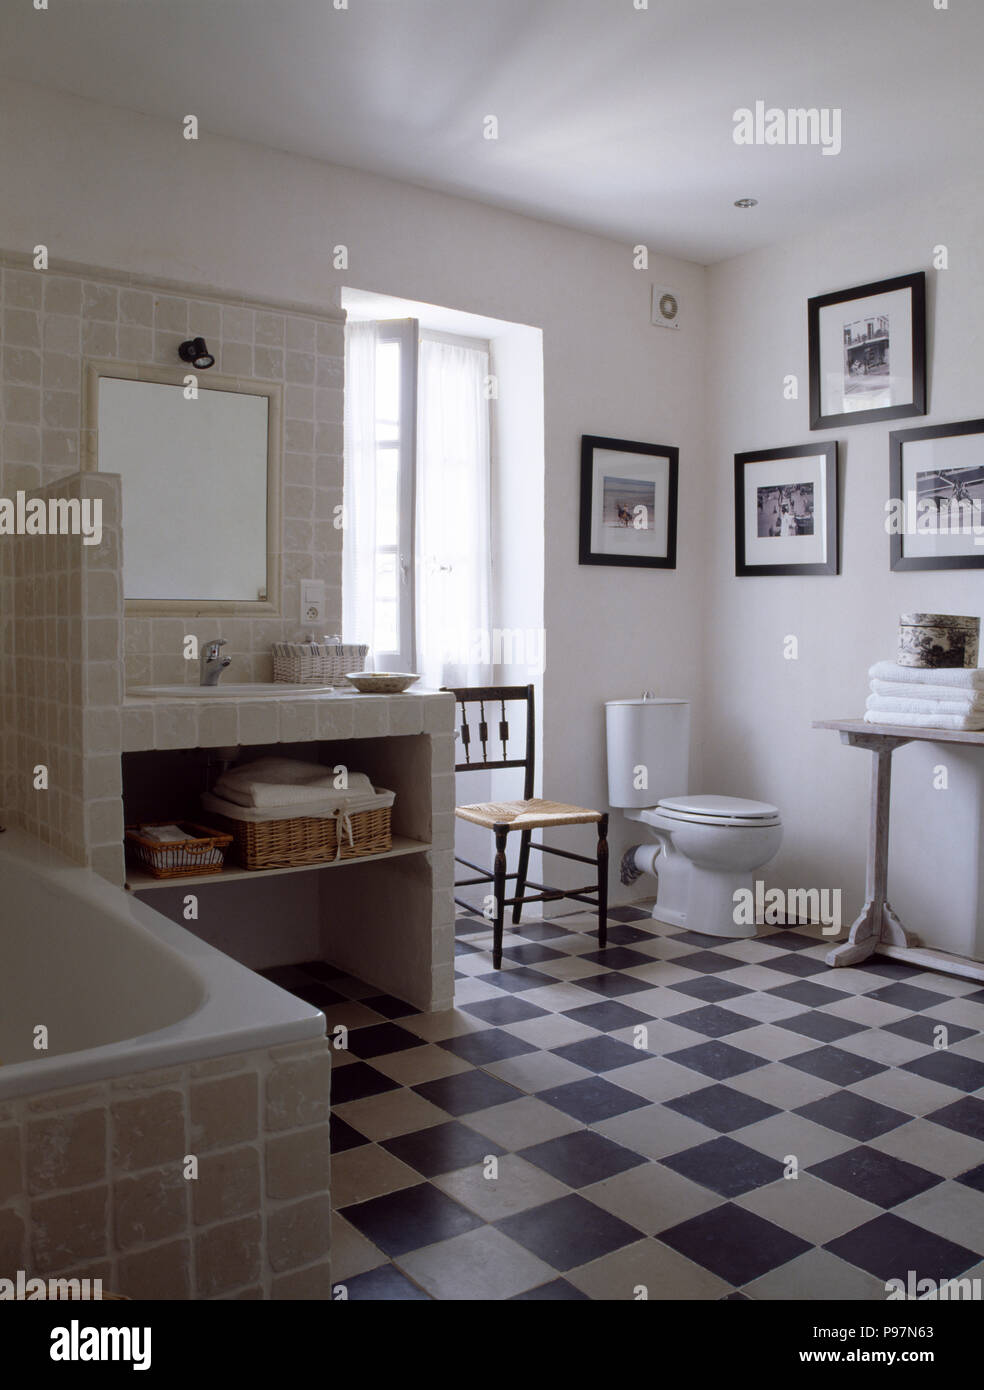 Black+white chequerboard floor in white Provencal bathroom with modern tiled vanity unit - Stock Image